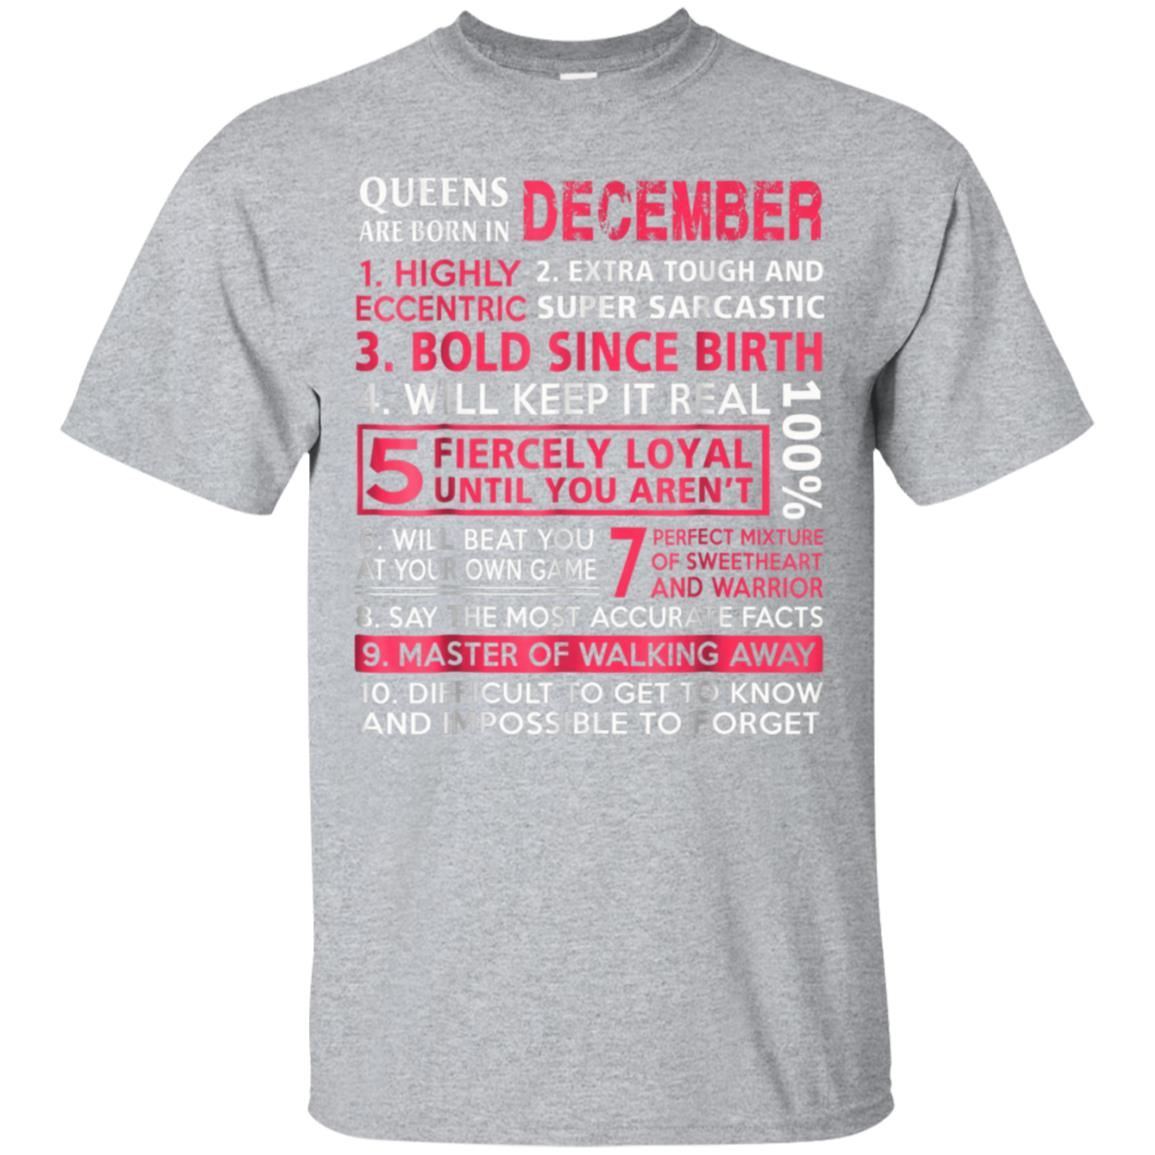 Queens Are Born In December - Top 10 Reasons Funny T-Shirt 99promocode